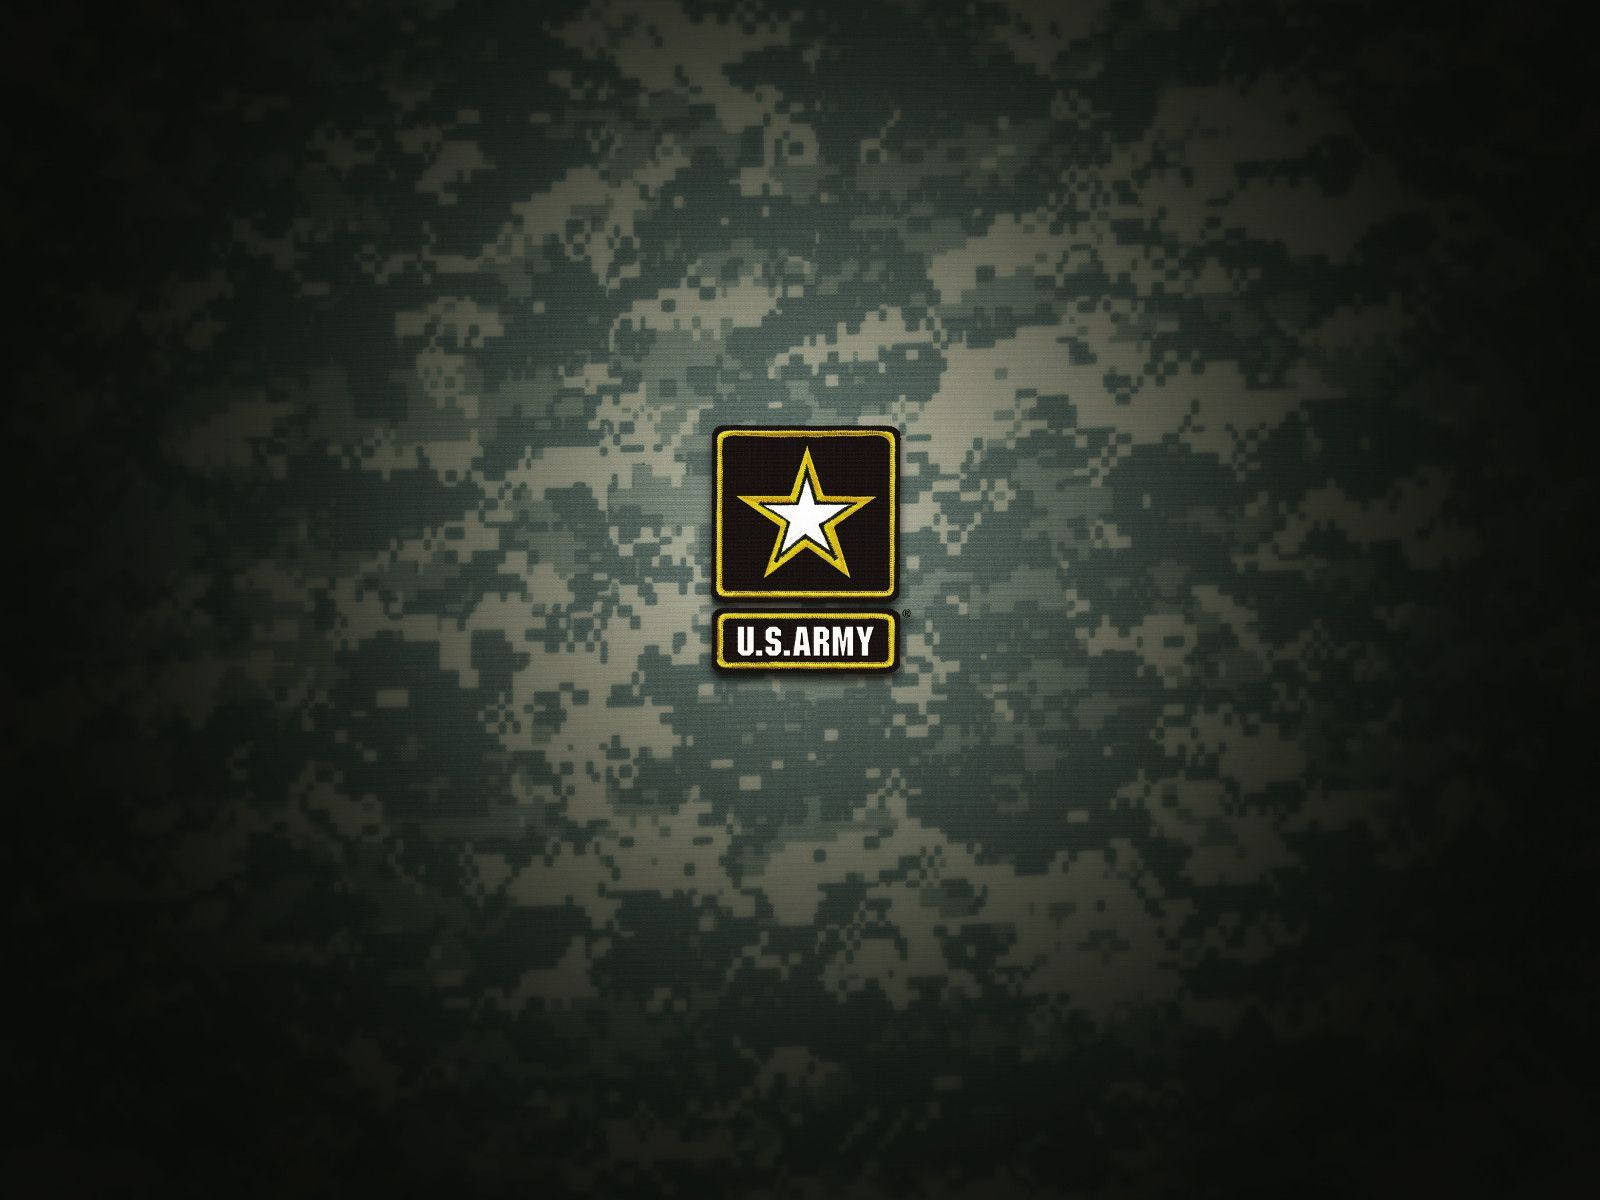 United States Army Wallpaper